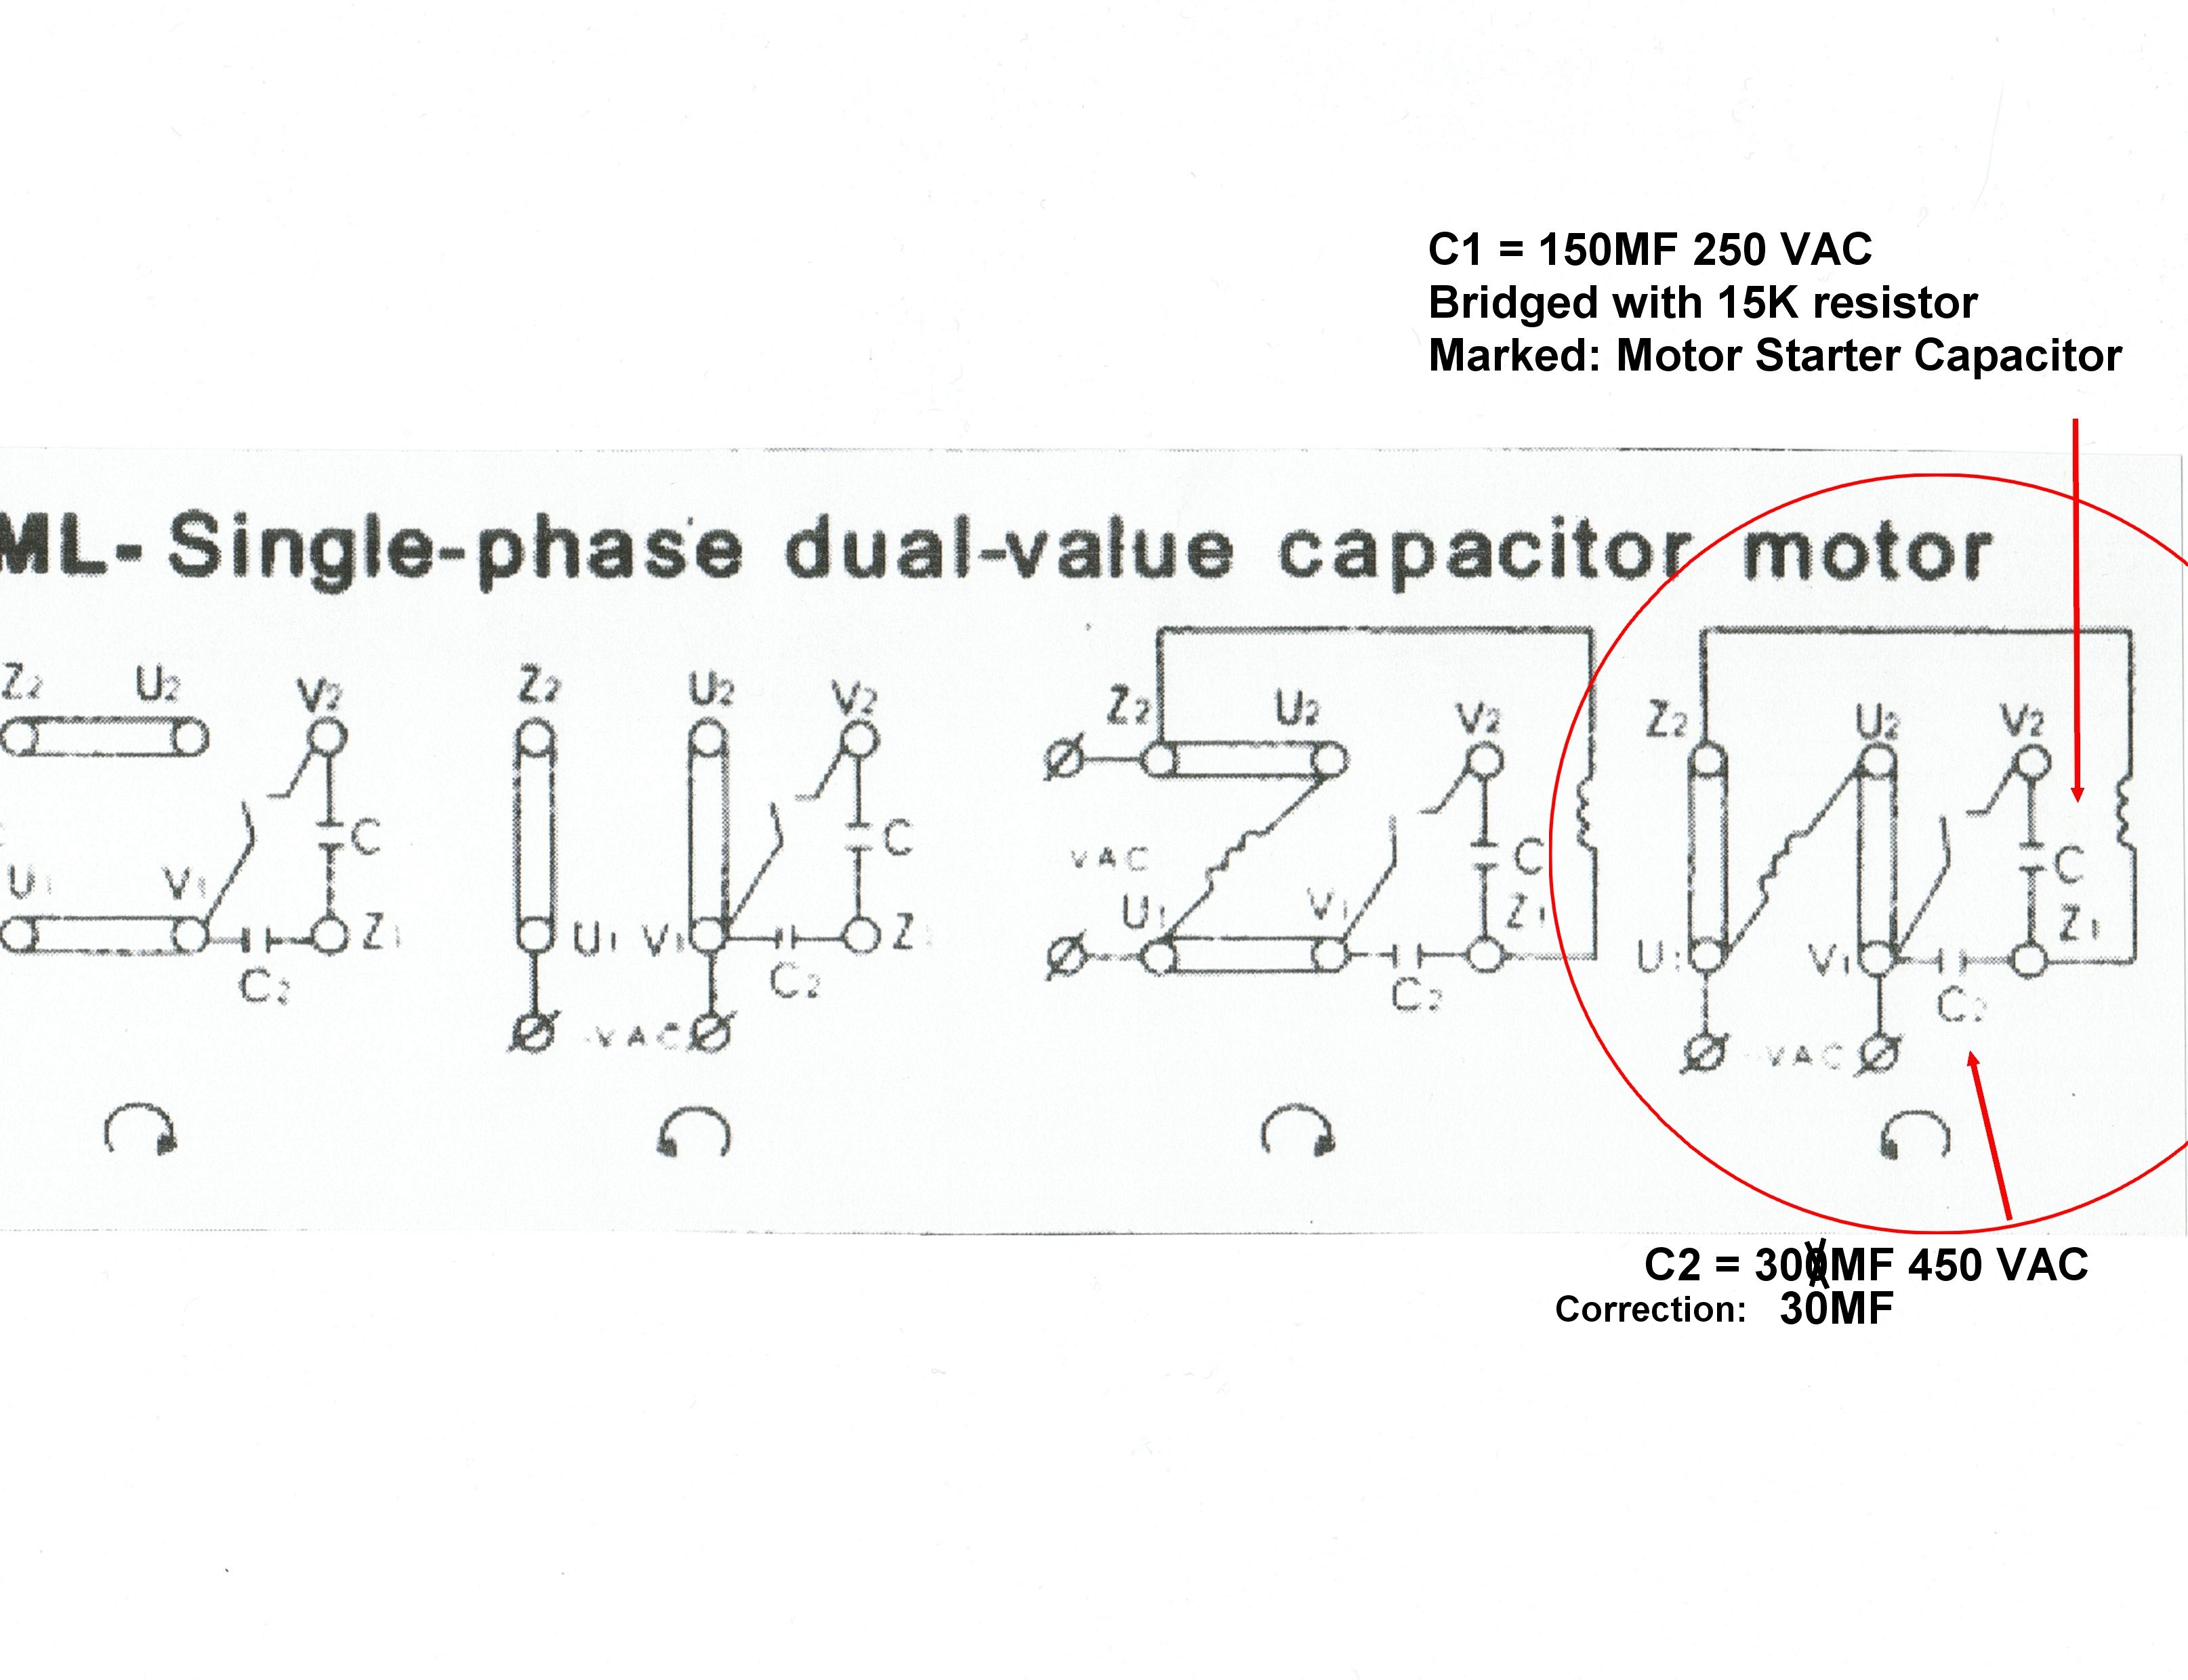 induction motor wiring diagrams get free image about wiring diagram